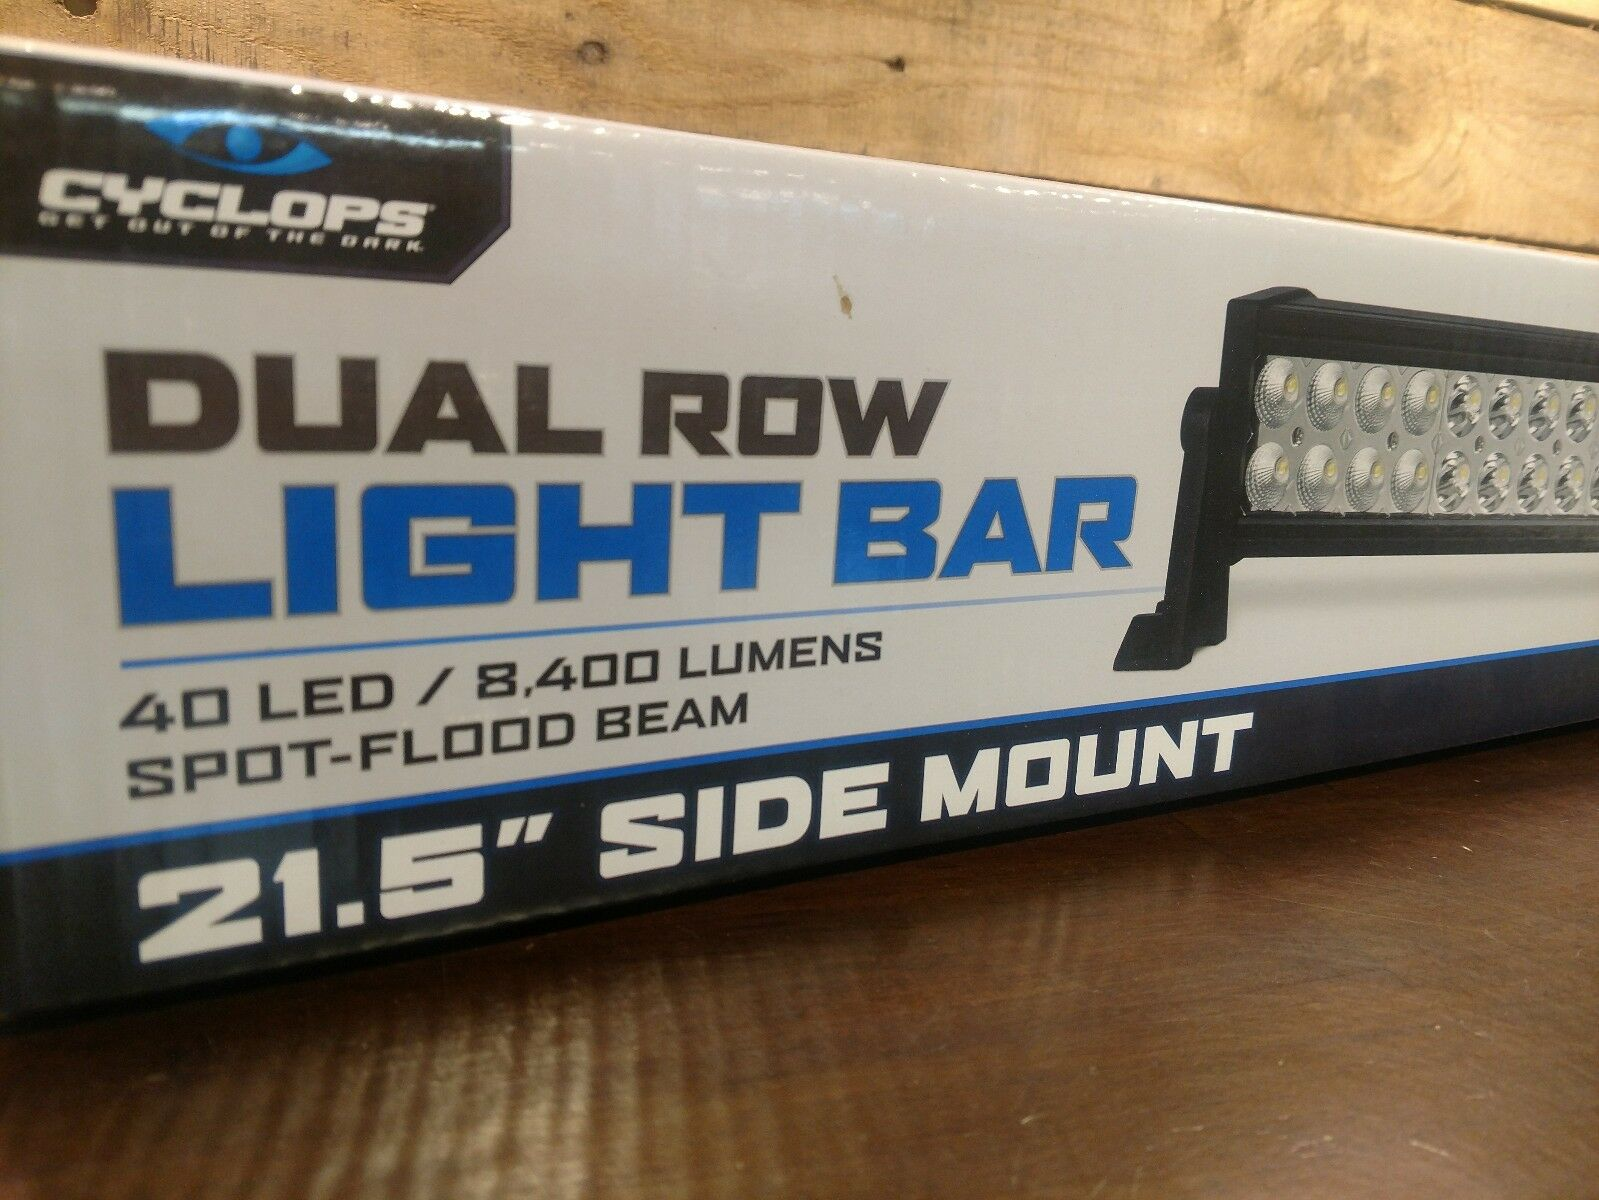 Cyclops Light Bar - DUAL ROW SIDE MOUNT - 120W